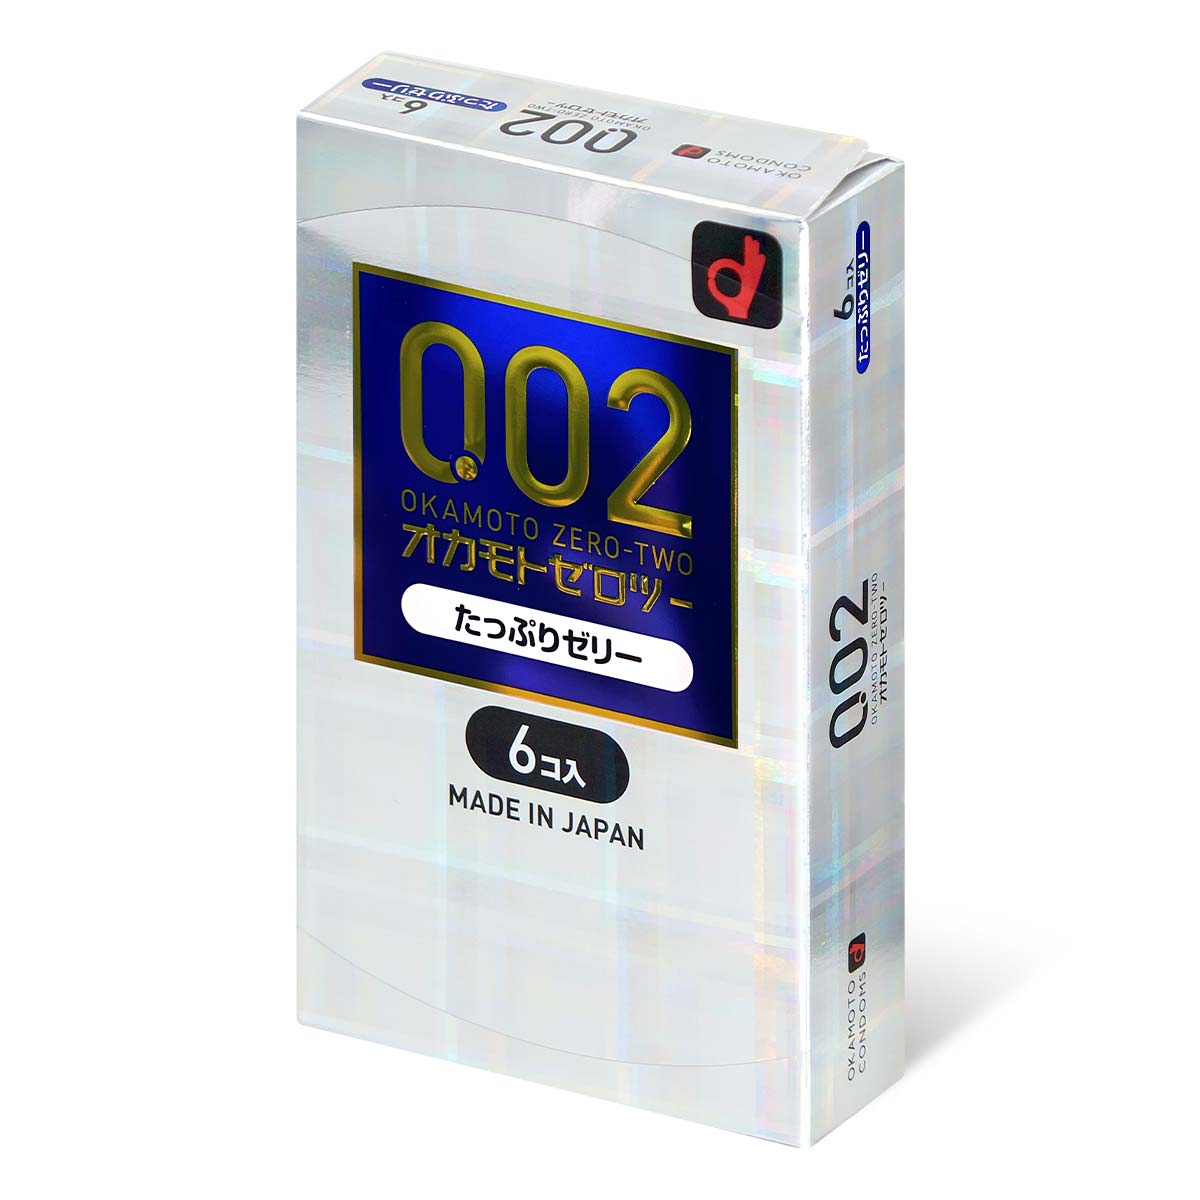 Okamoto Unified Thinness 0.02 Plenty of Jelly (Japan Edition) 6's Pack PU Condom